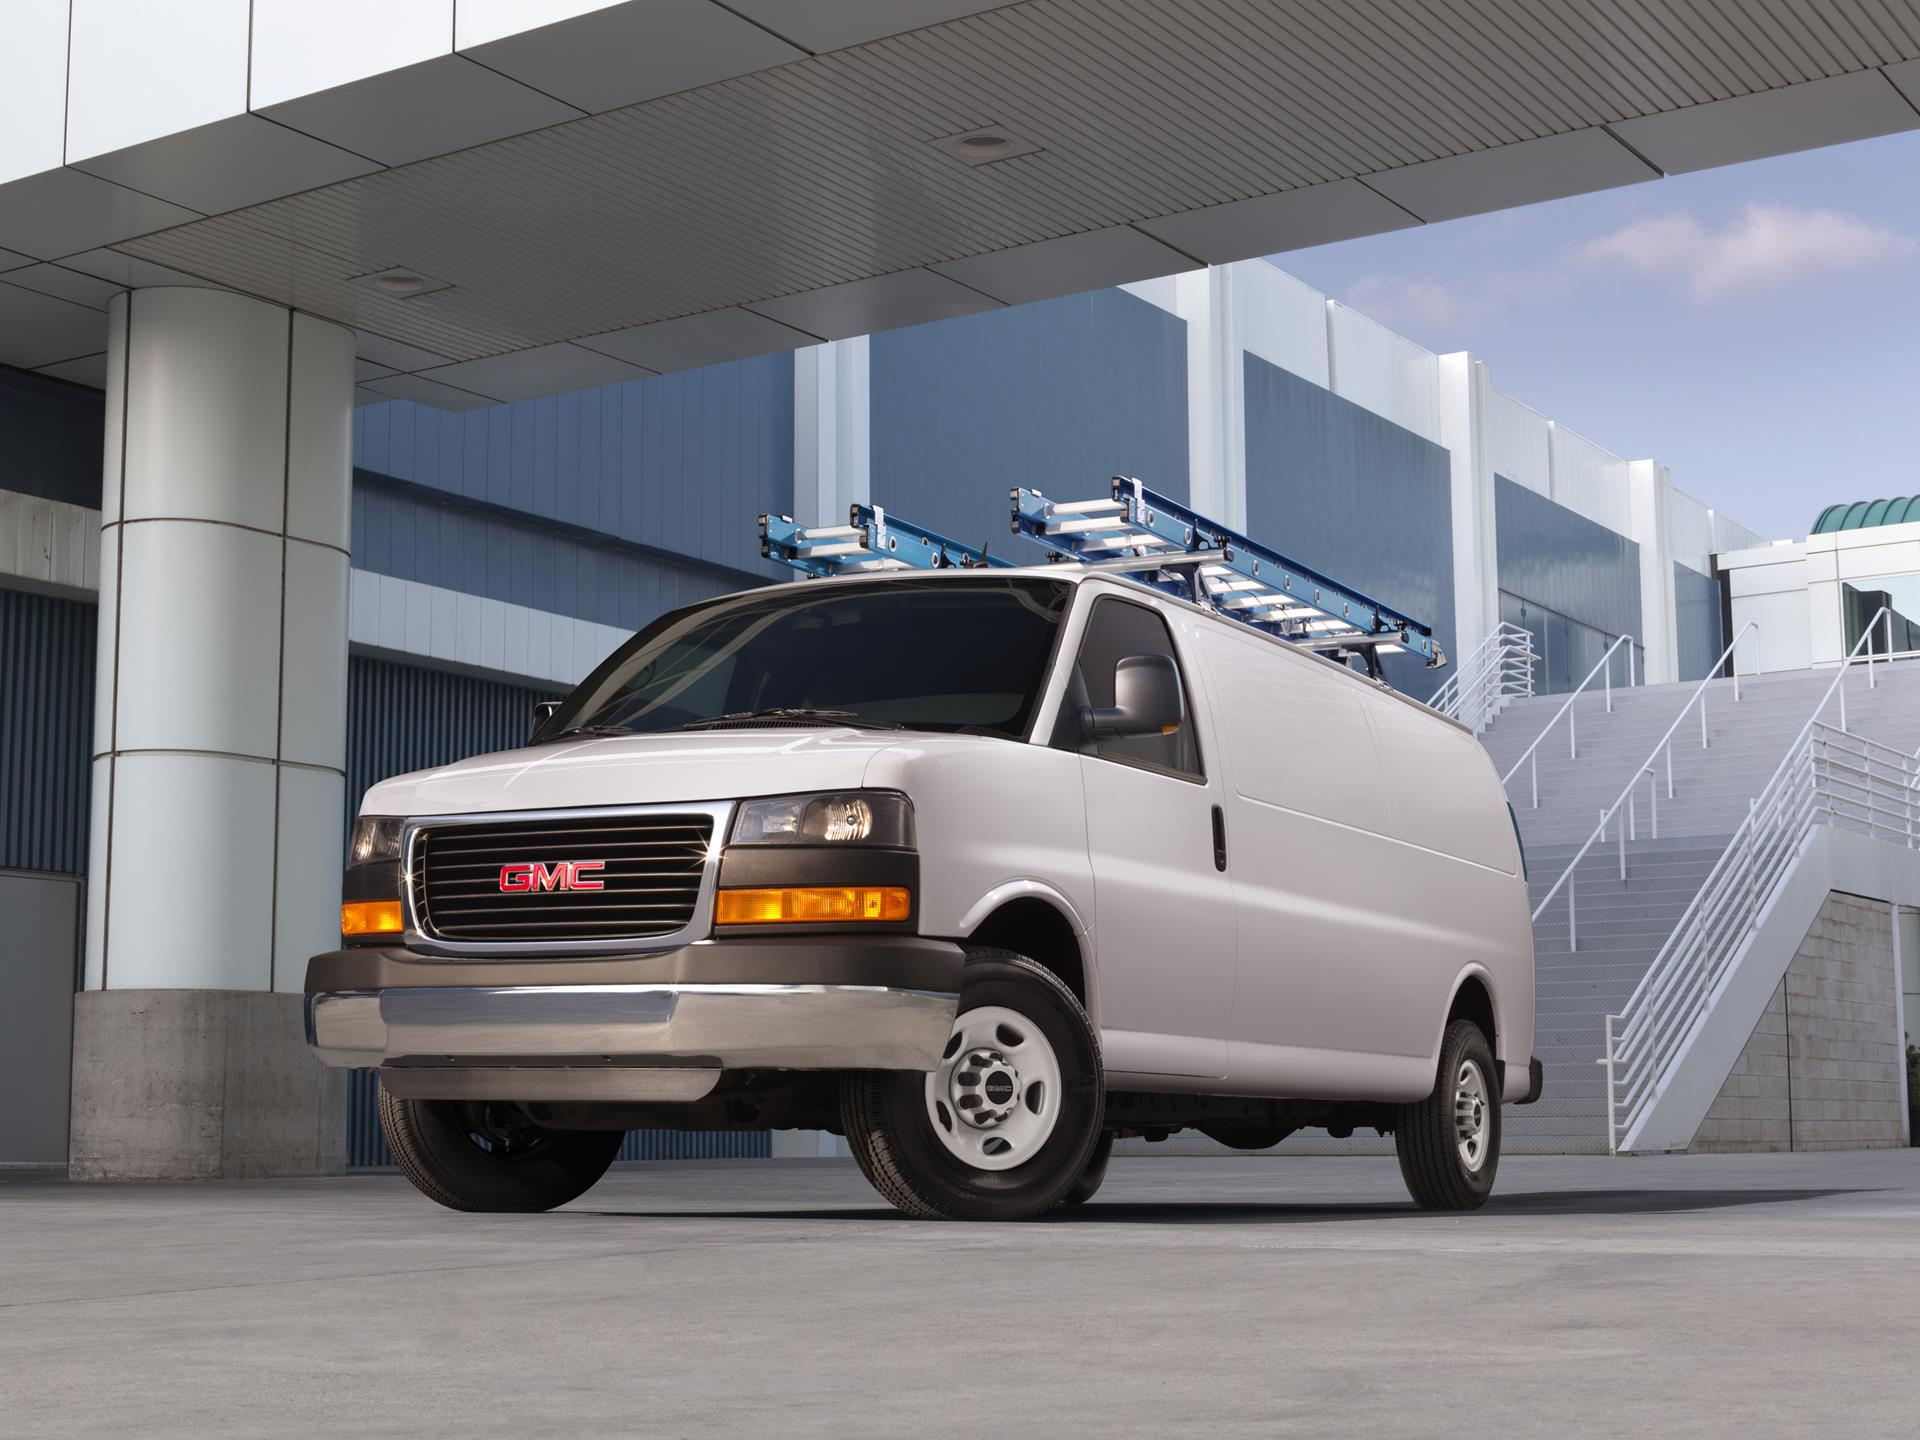 GMC Savana Cargo Van pictures and wallpaper